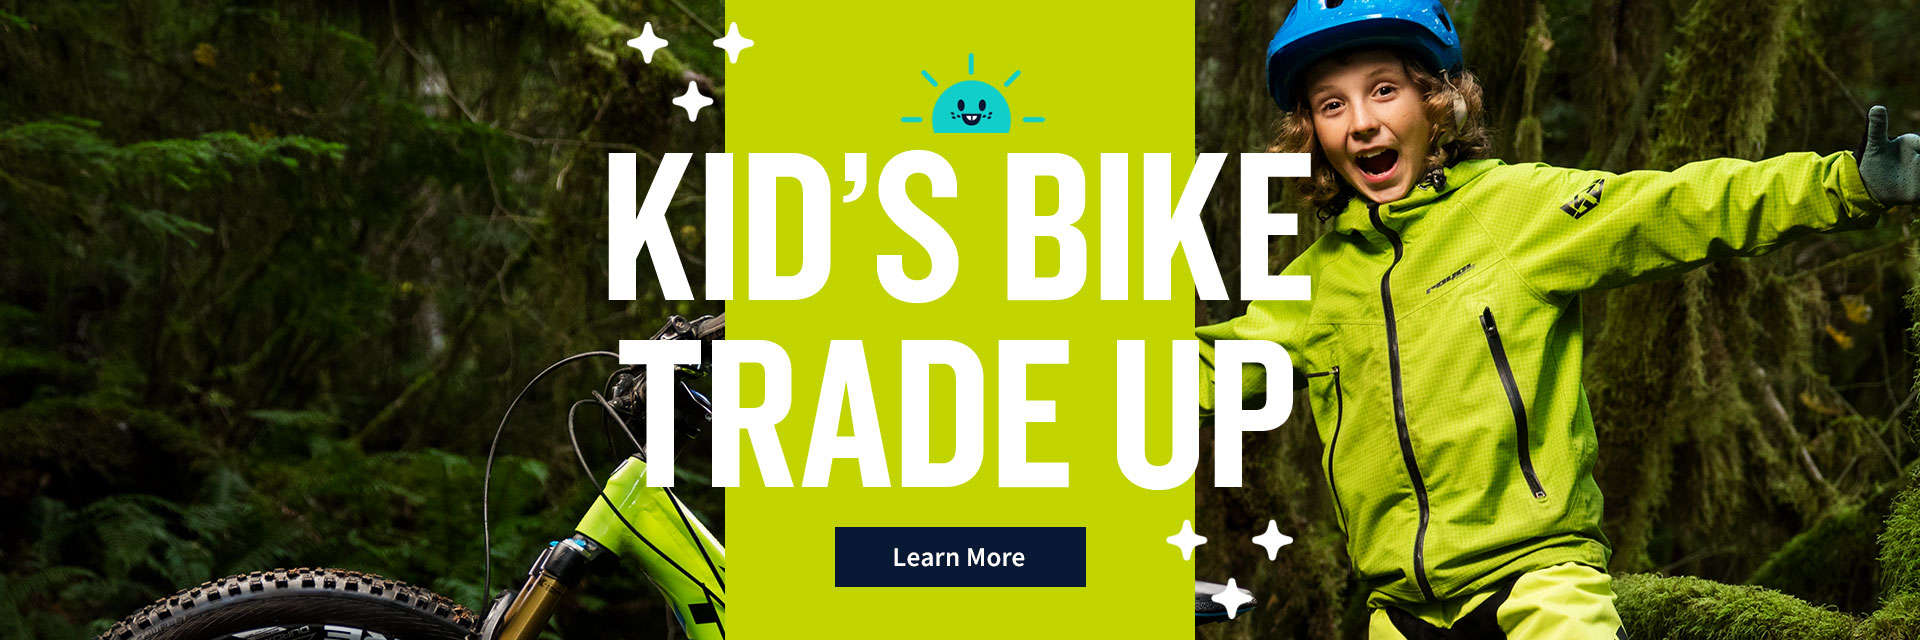 Kid's Bike Trade Up